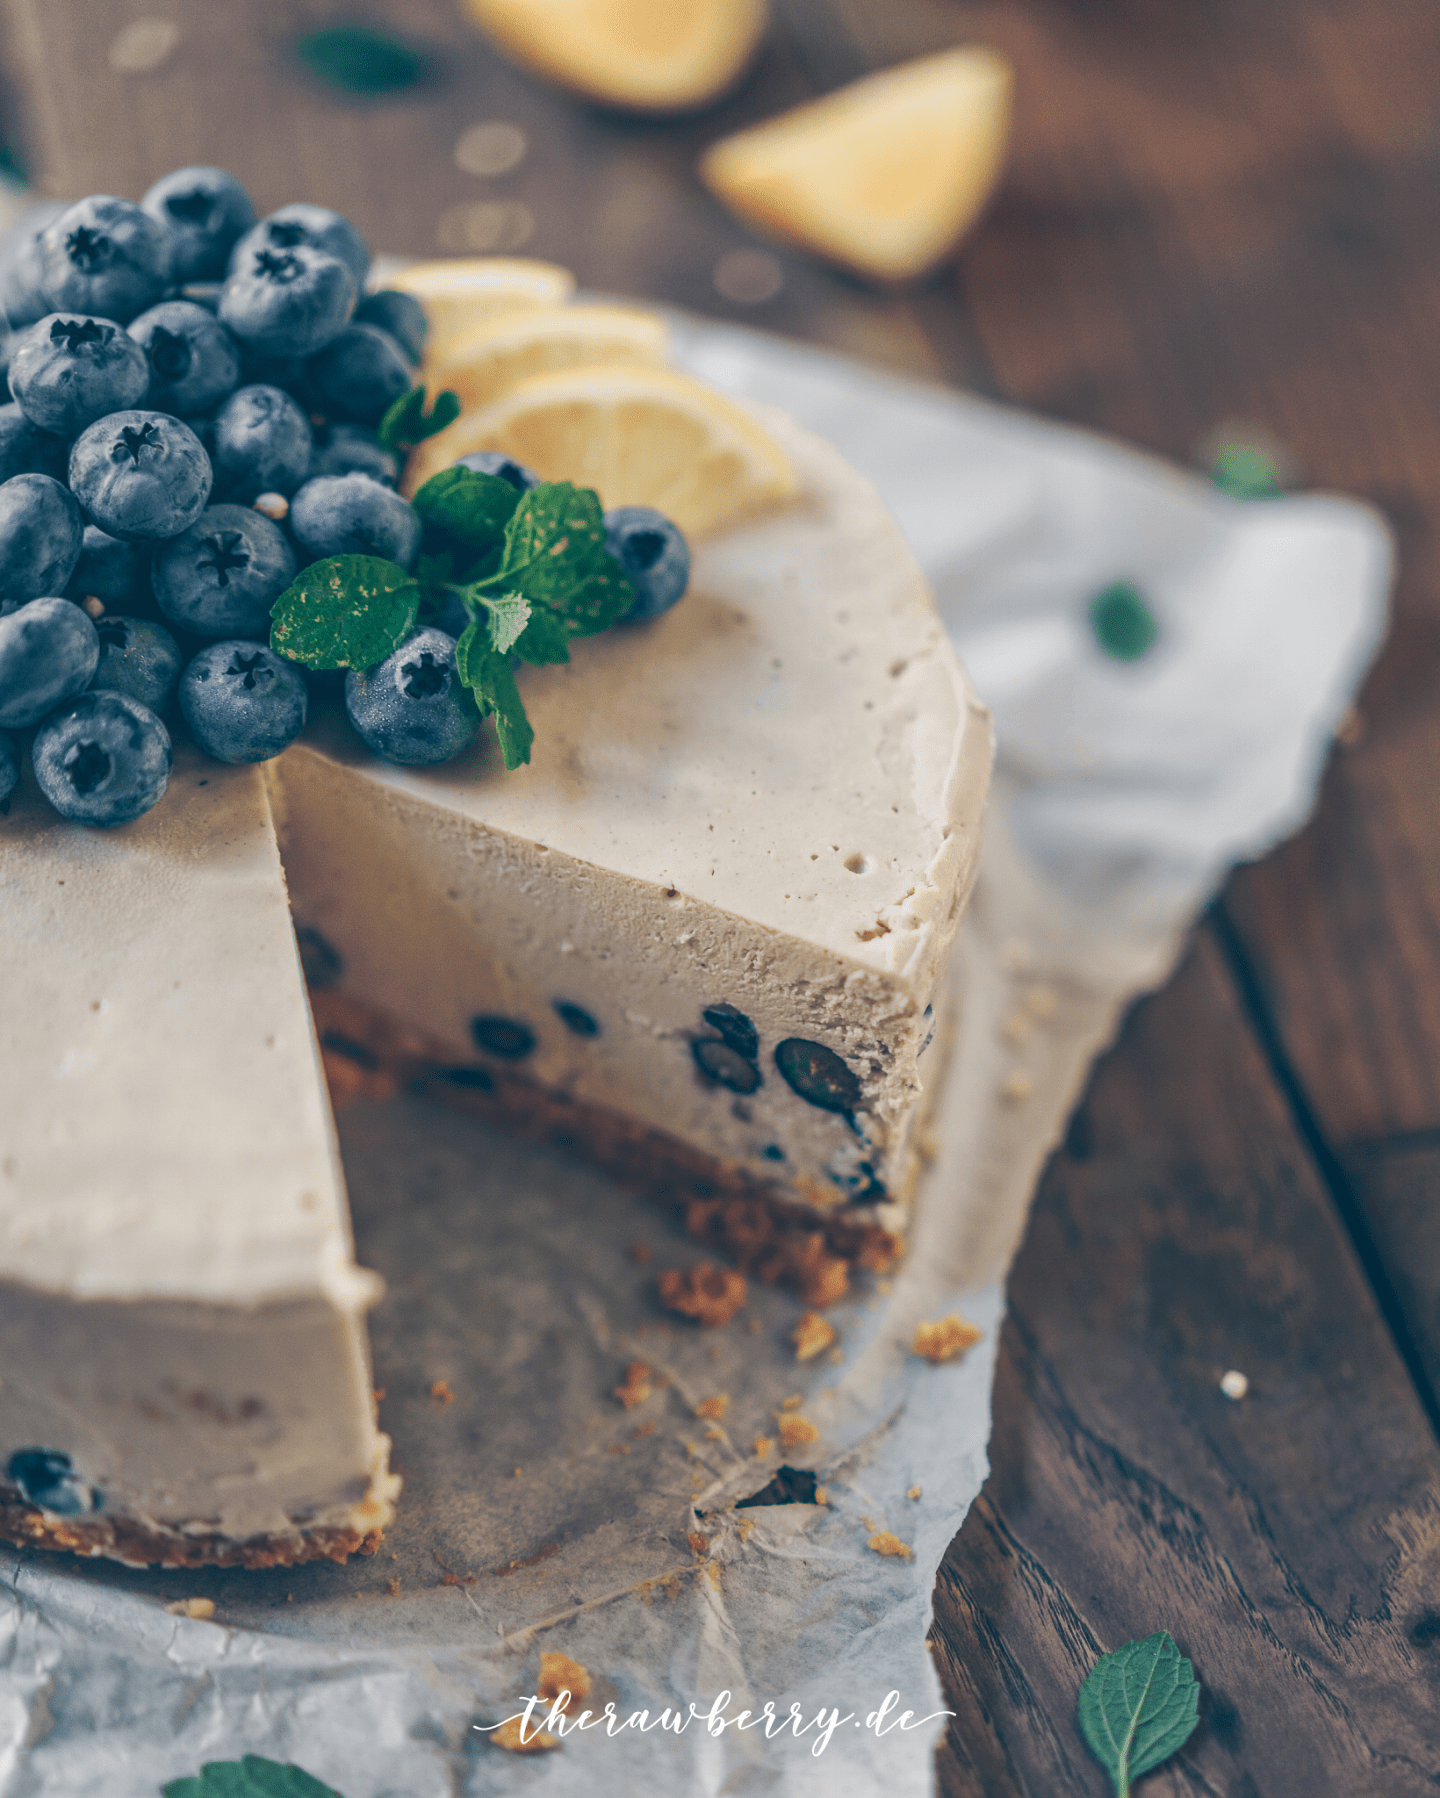 healthy, cake, gesund, kuchen, raw, roh, vegan, lecker, delicious, blueberries, Blaubeeren, Zitrone, Lemon, Cheesecake, Käsekuchen, clean eating, rohvegan, gluten-free, glutenfrei, zuckerfrei, sugar free, easy, recipe, rezept, whole foods, Vollwertkost